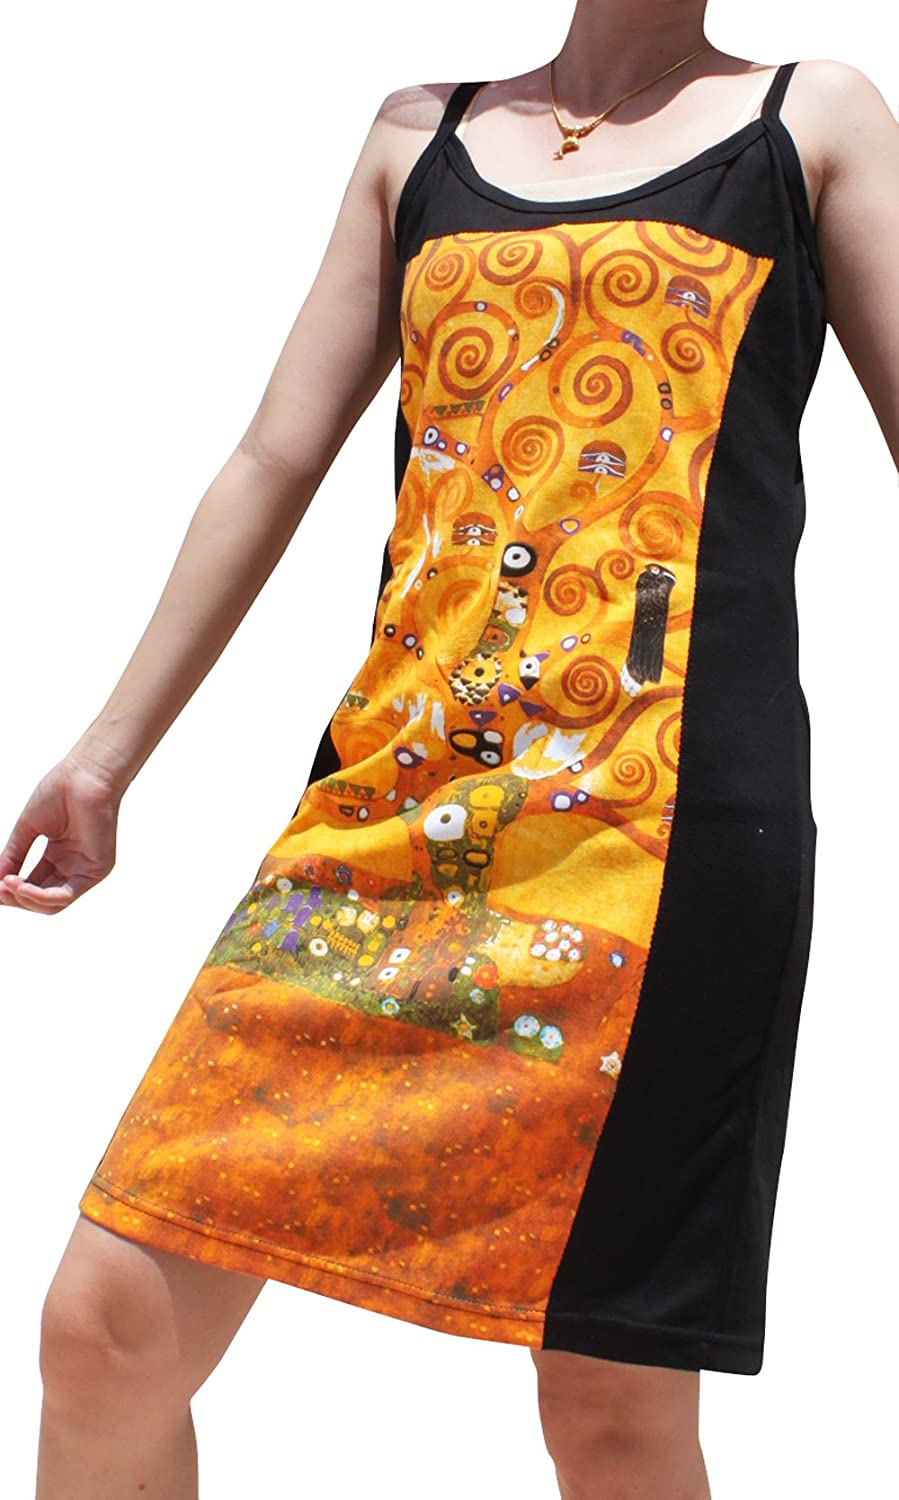 Raan Pah Muang Gustav Klimt The Tree of Life Black Side Dress